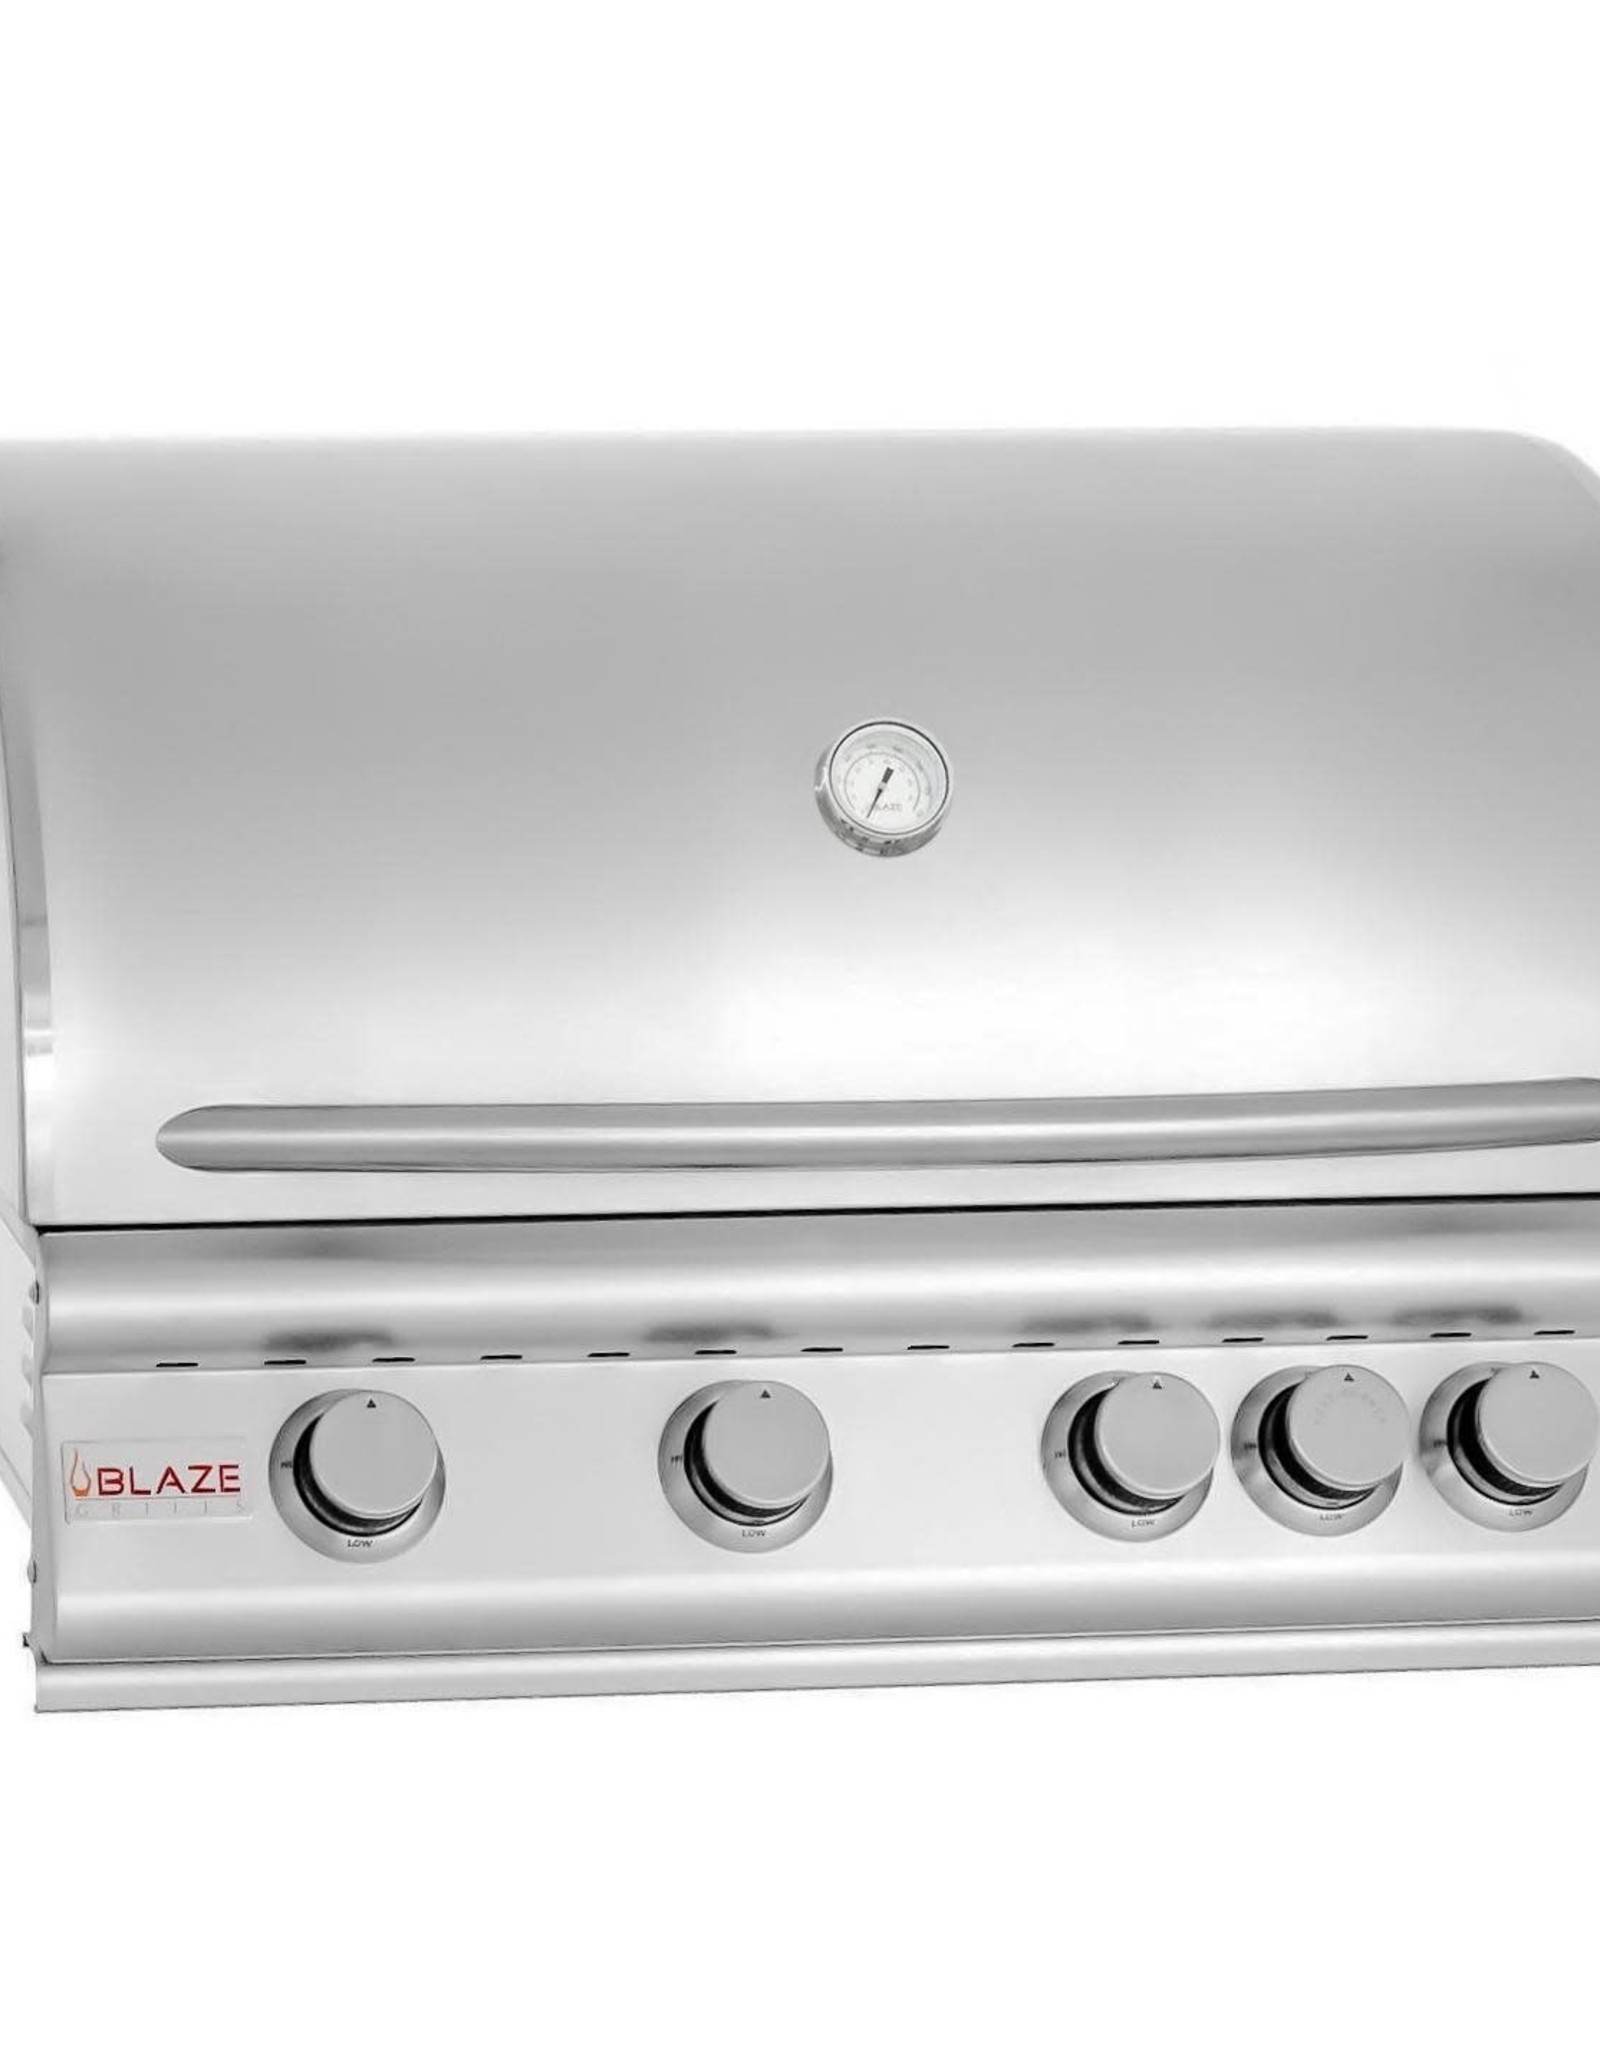 Blaze Outdoor Products Blaze 32-Inch 4-Burner Built-In Propane Gas Grill With Rear Infrared Burner - BLZ-4-LP